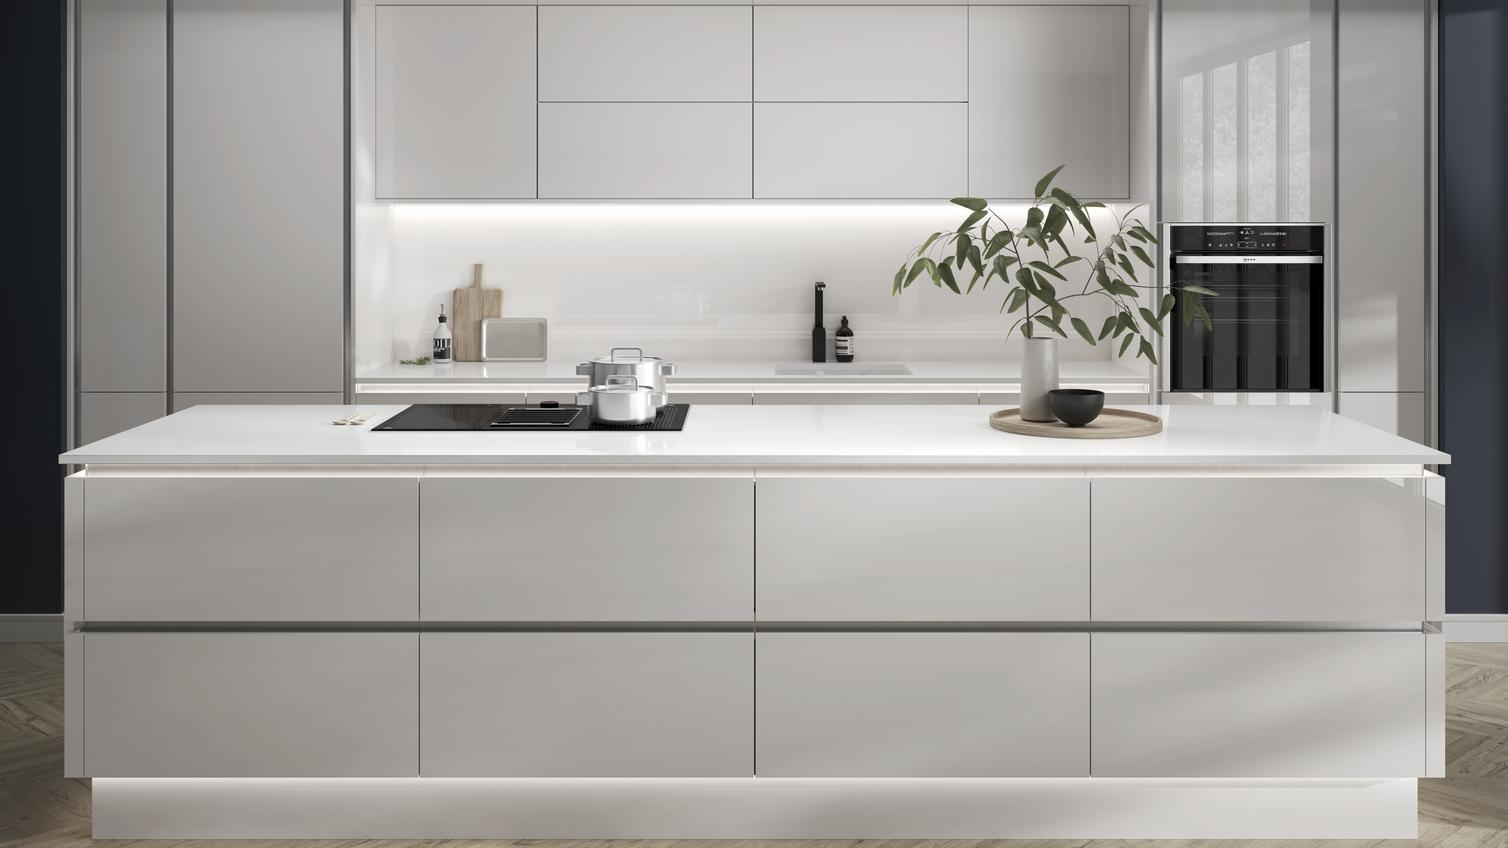 Hockley Mirror Gloss Dove Grey Handleless Kitchen Fitted